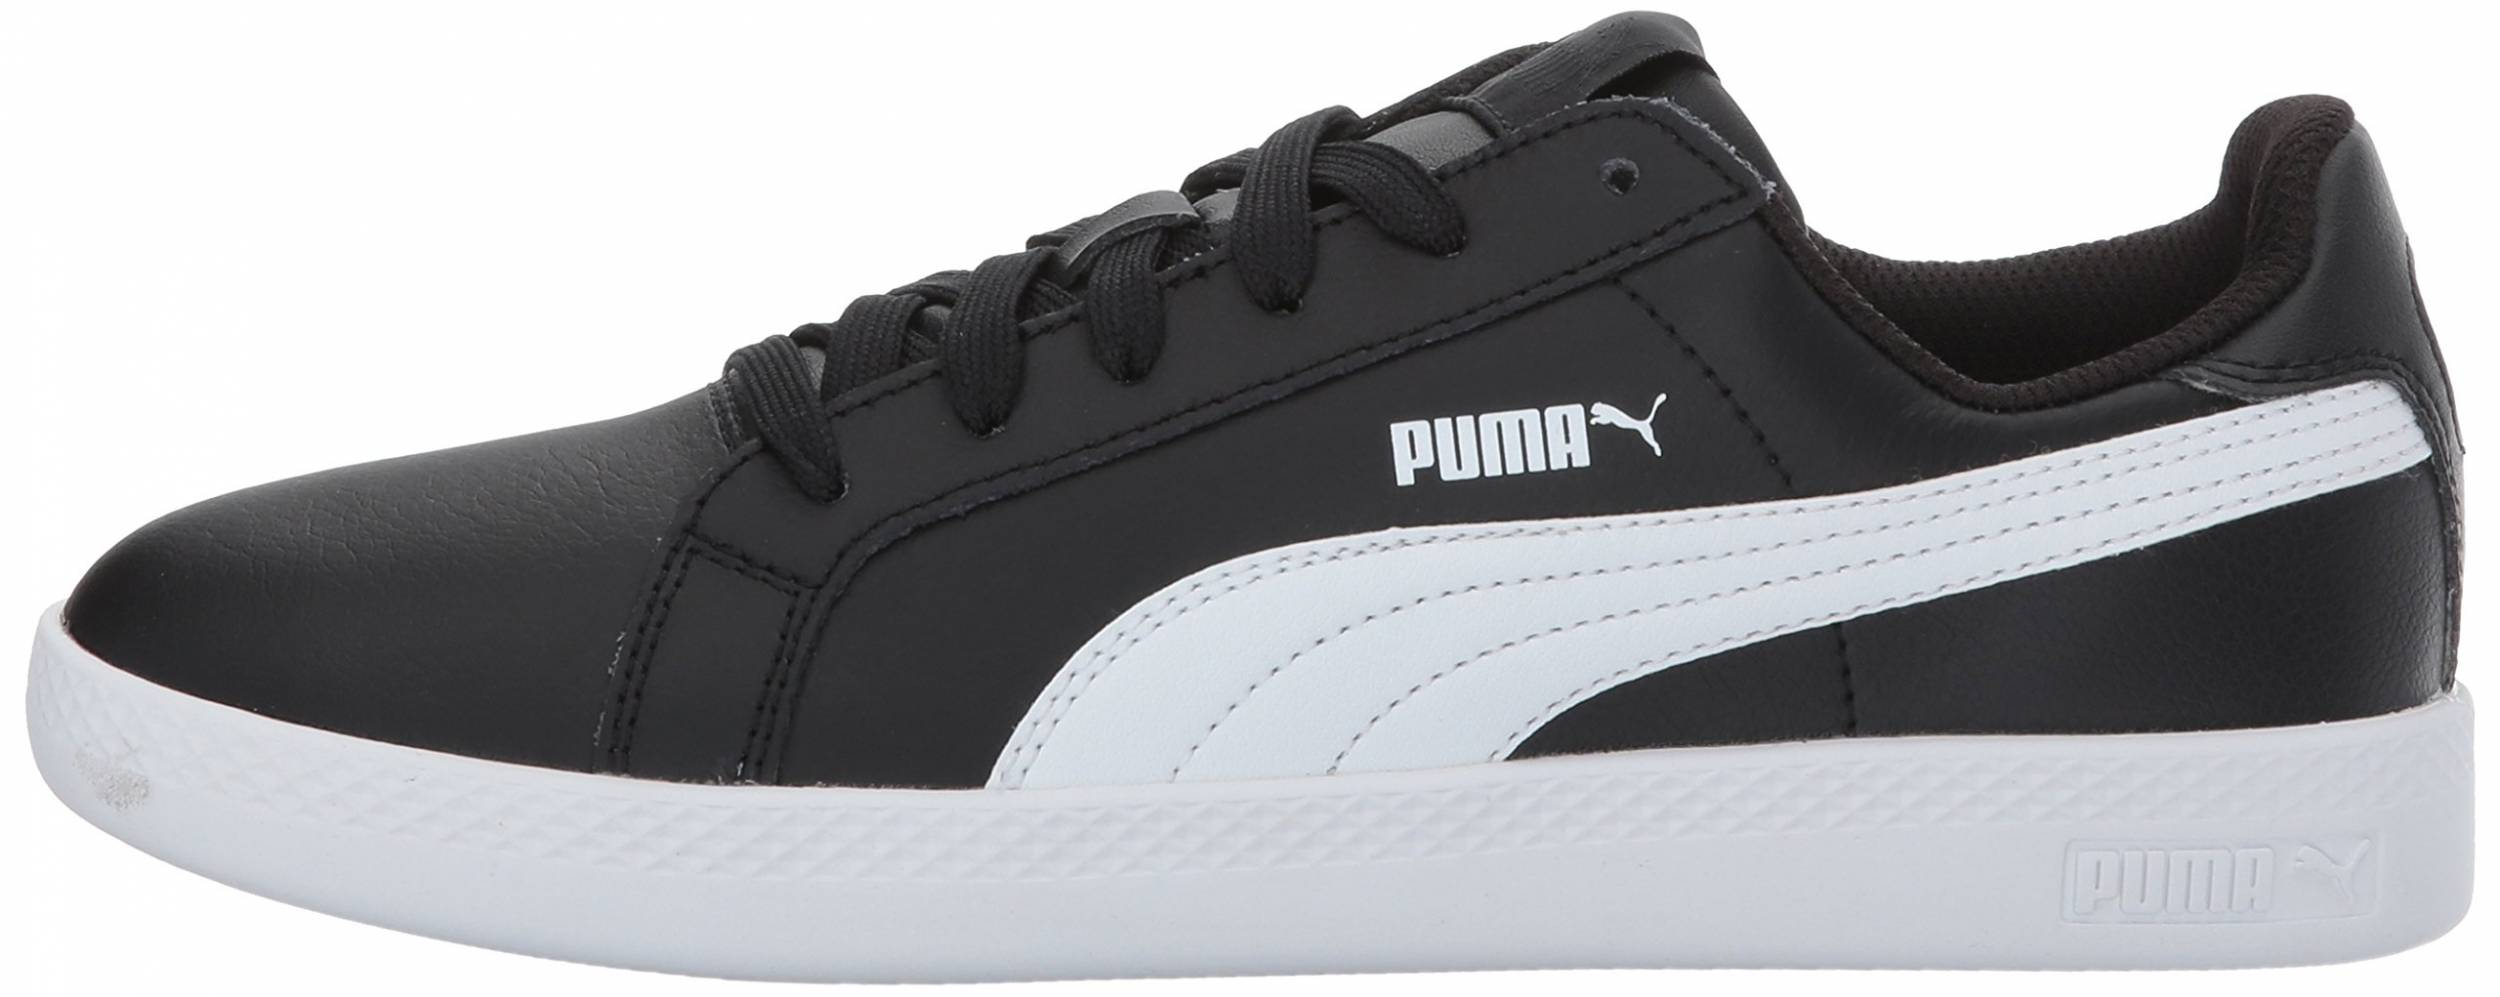 Only $39 + Review of Puma Smash Leather